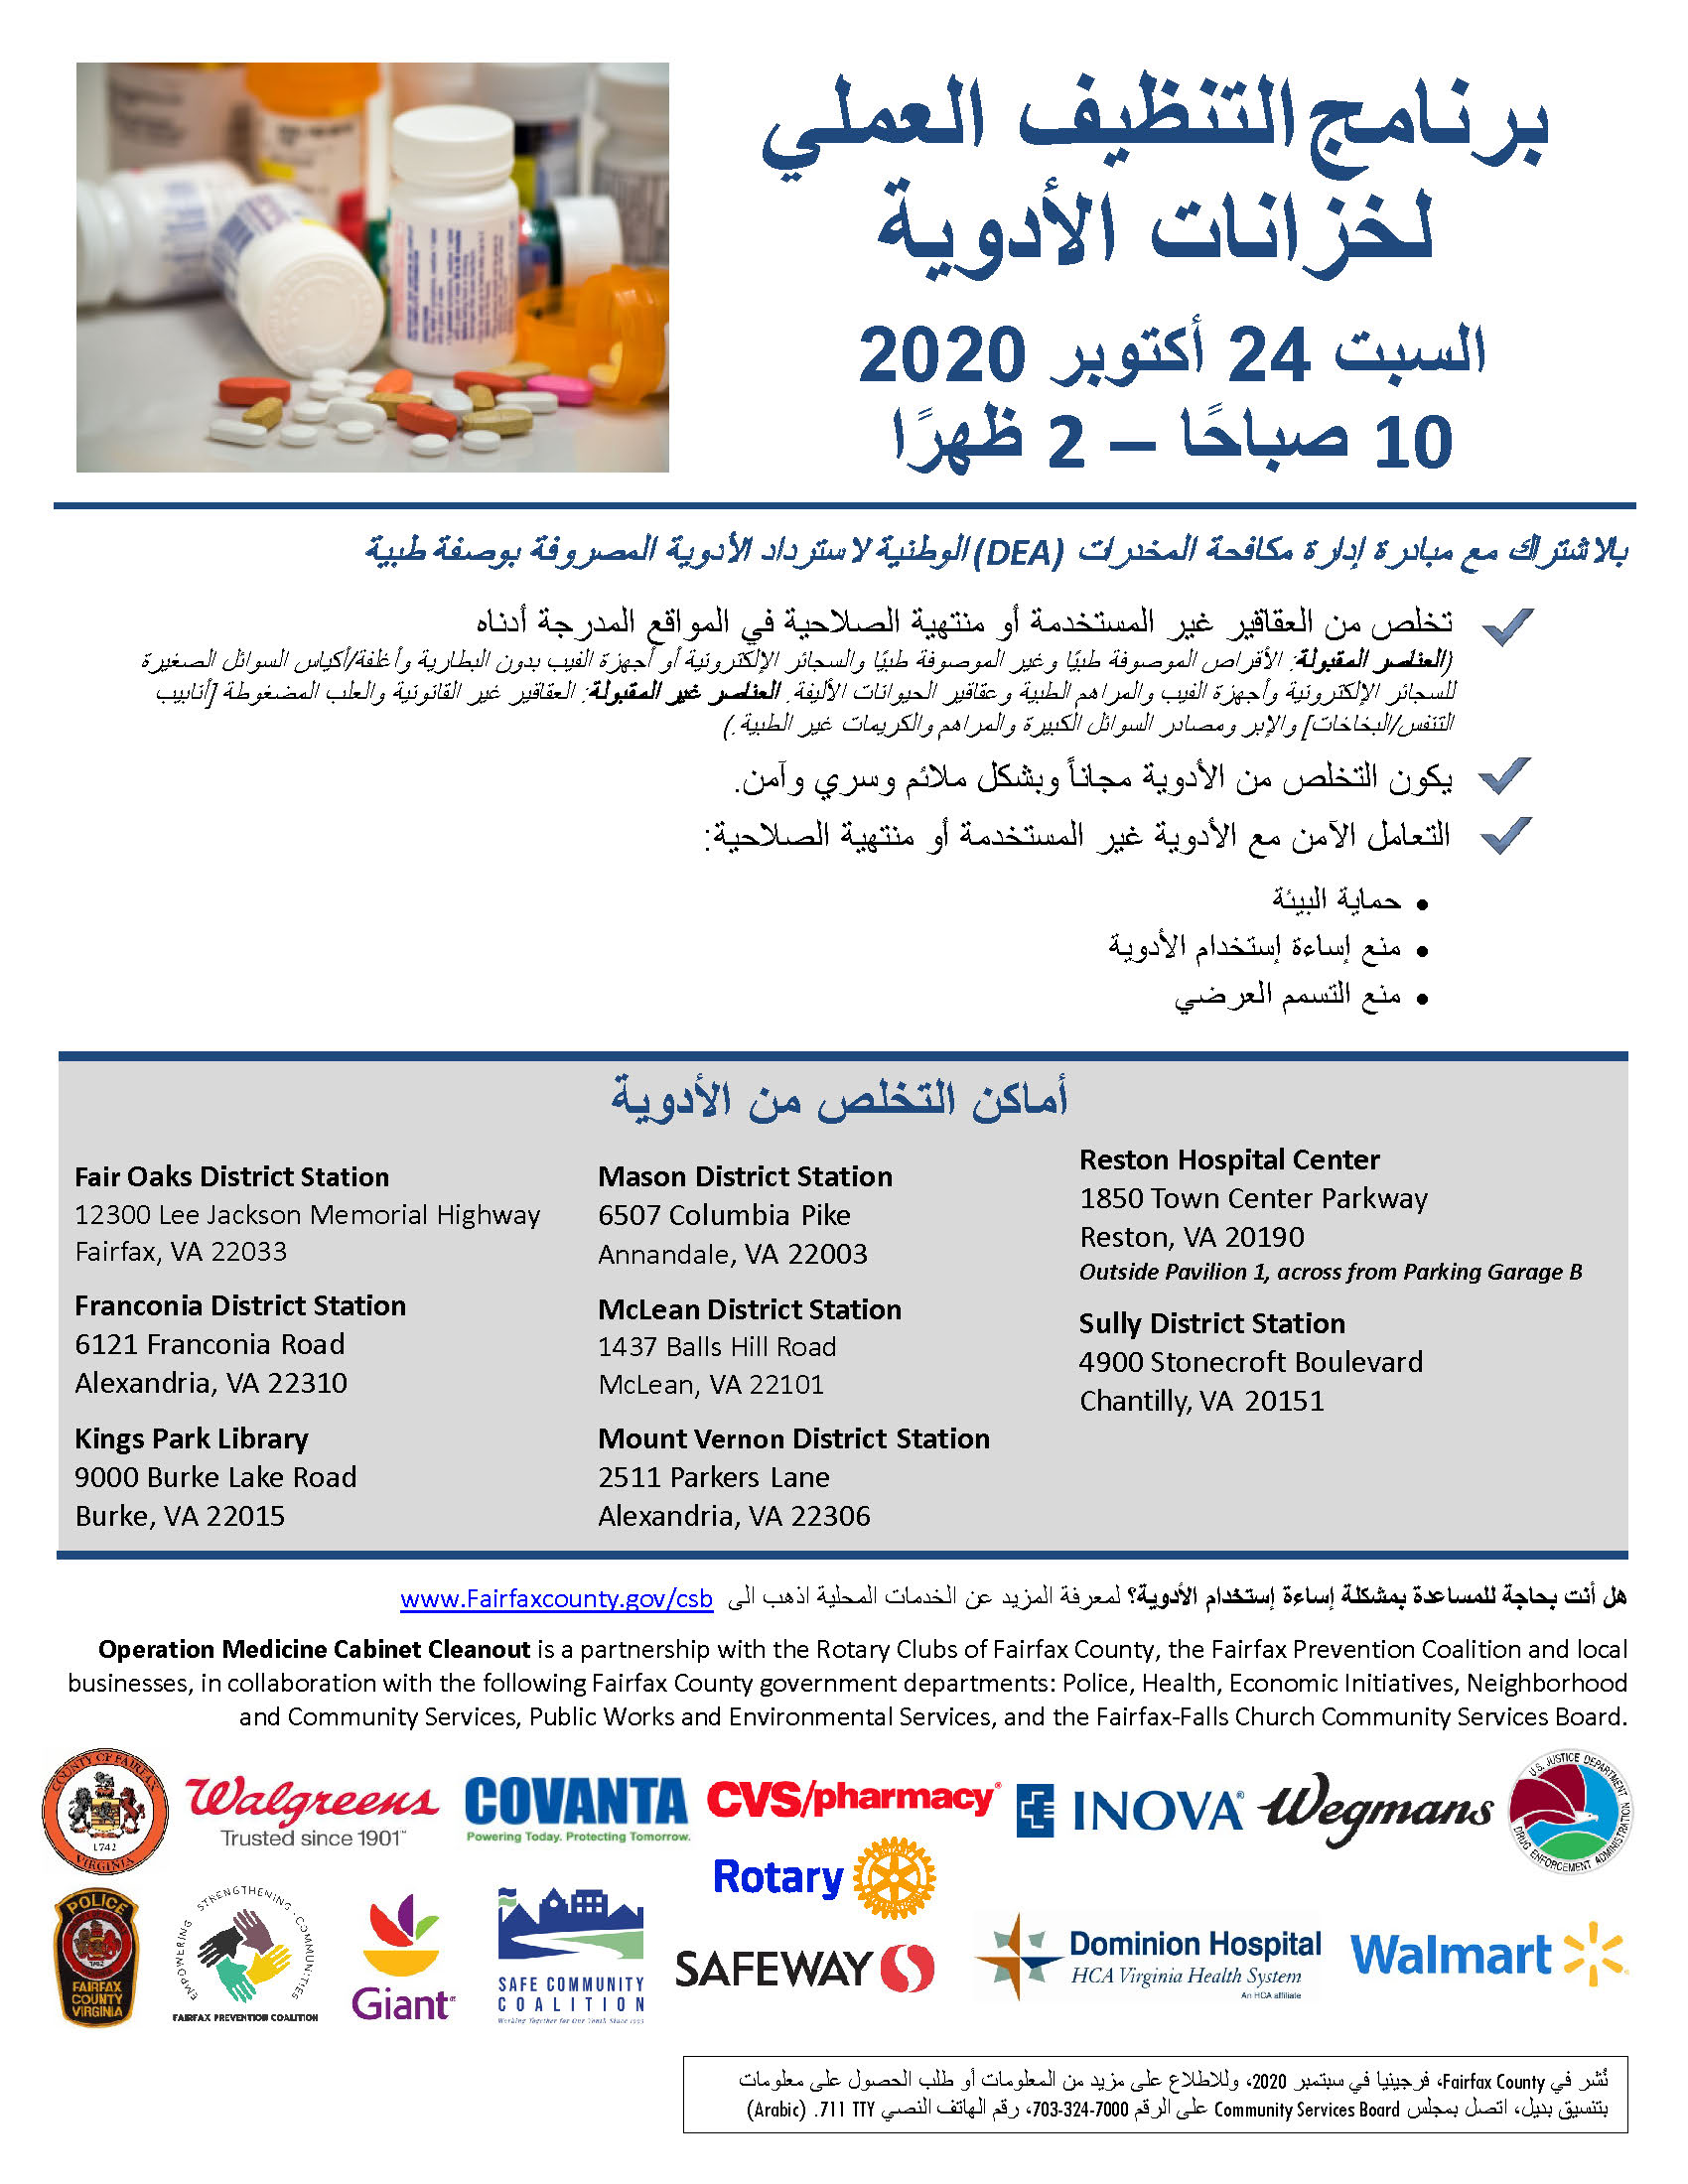 Operation Medicine Cabinet Cleanout flyer - Arabic